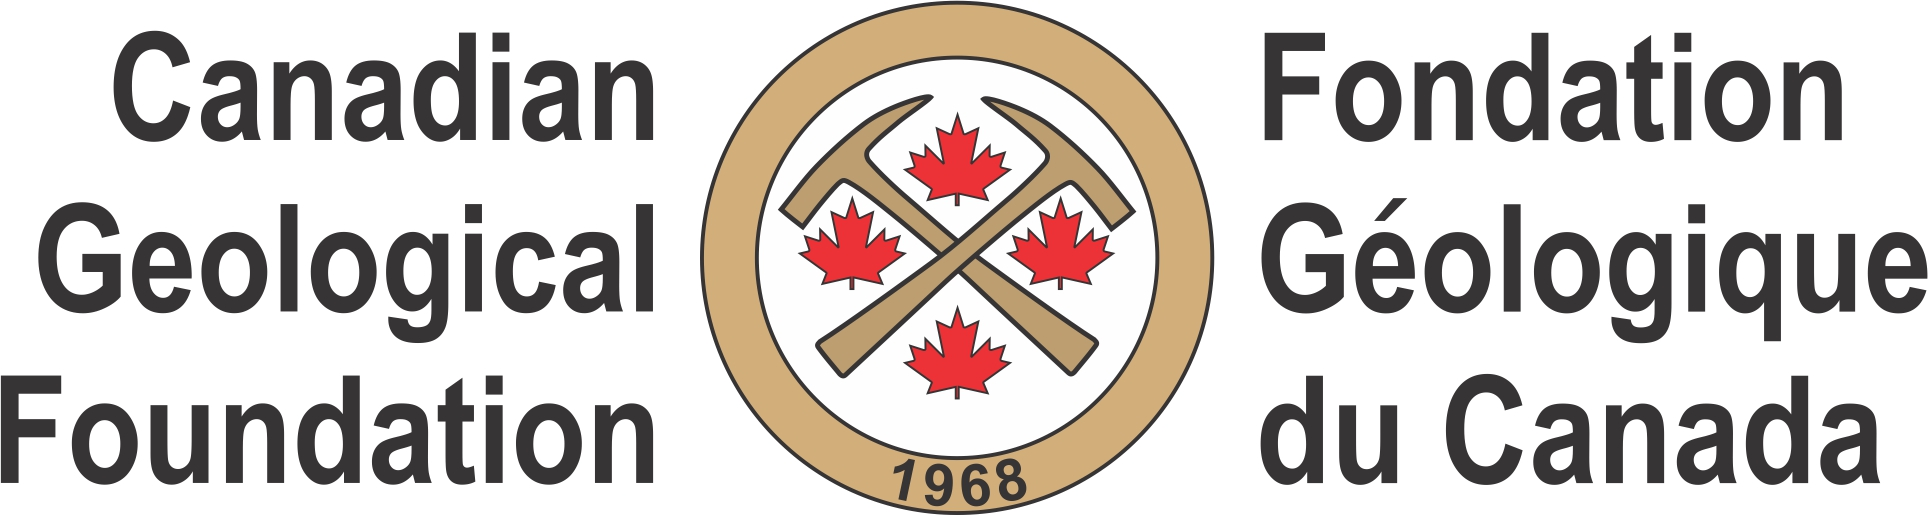 Canadian Geological Foundation